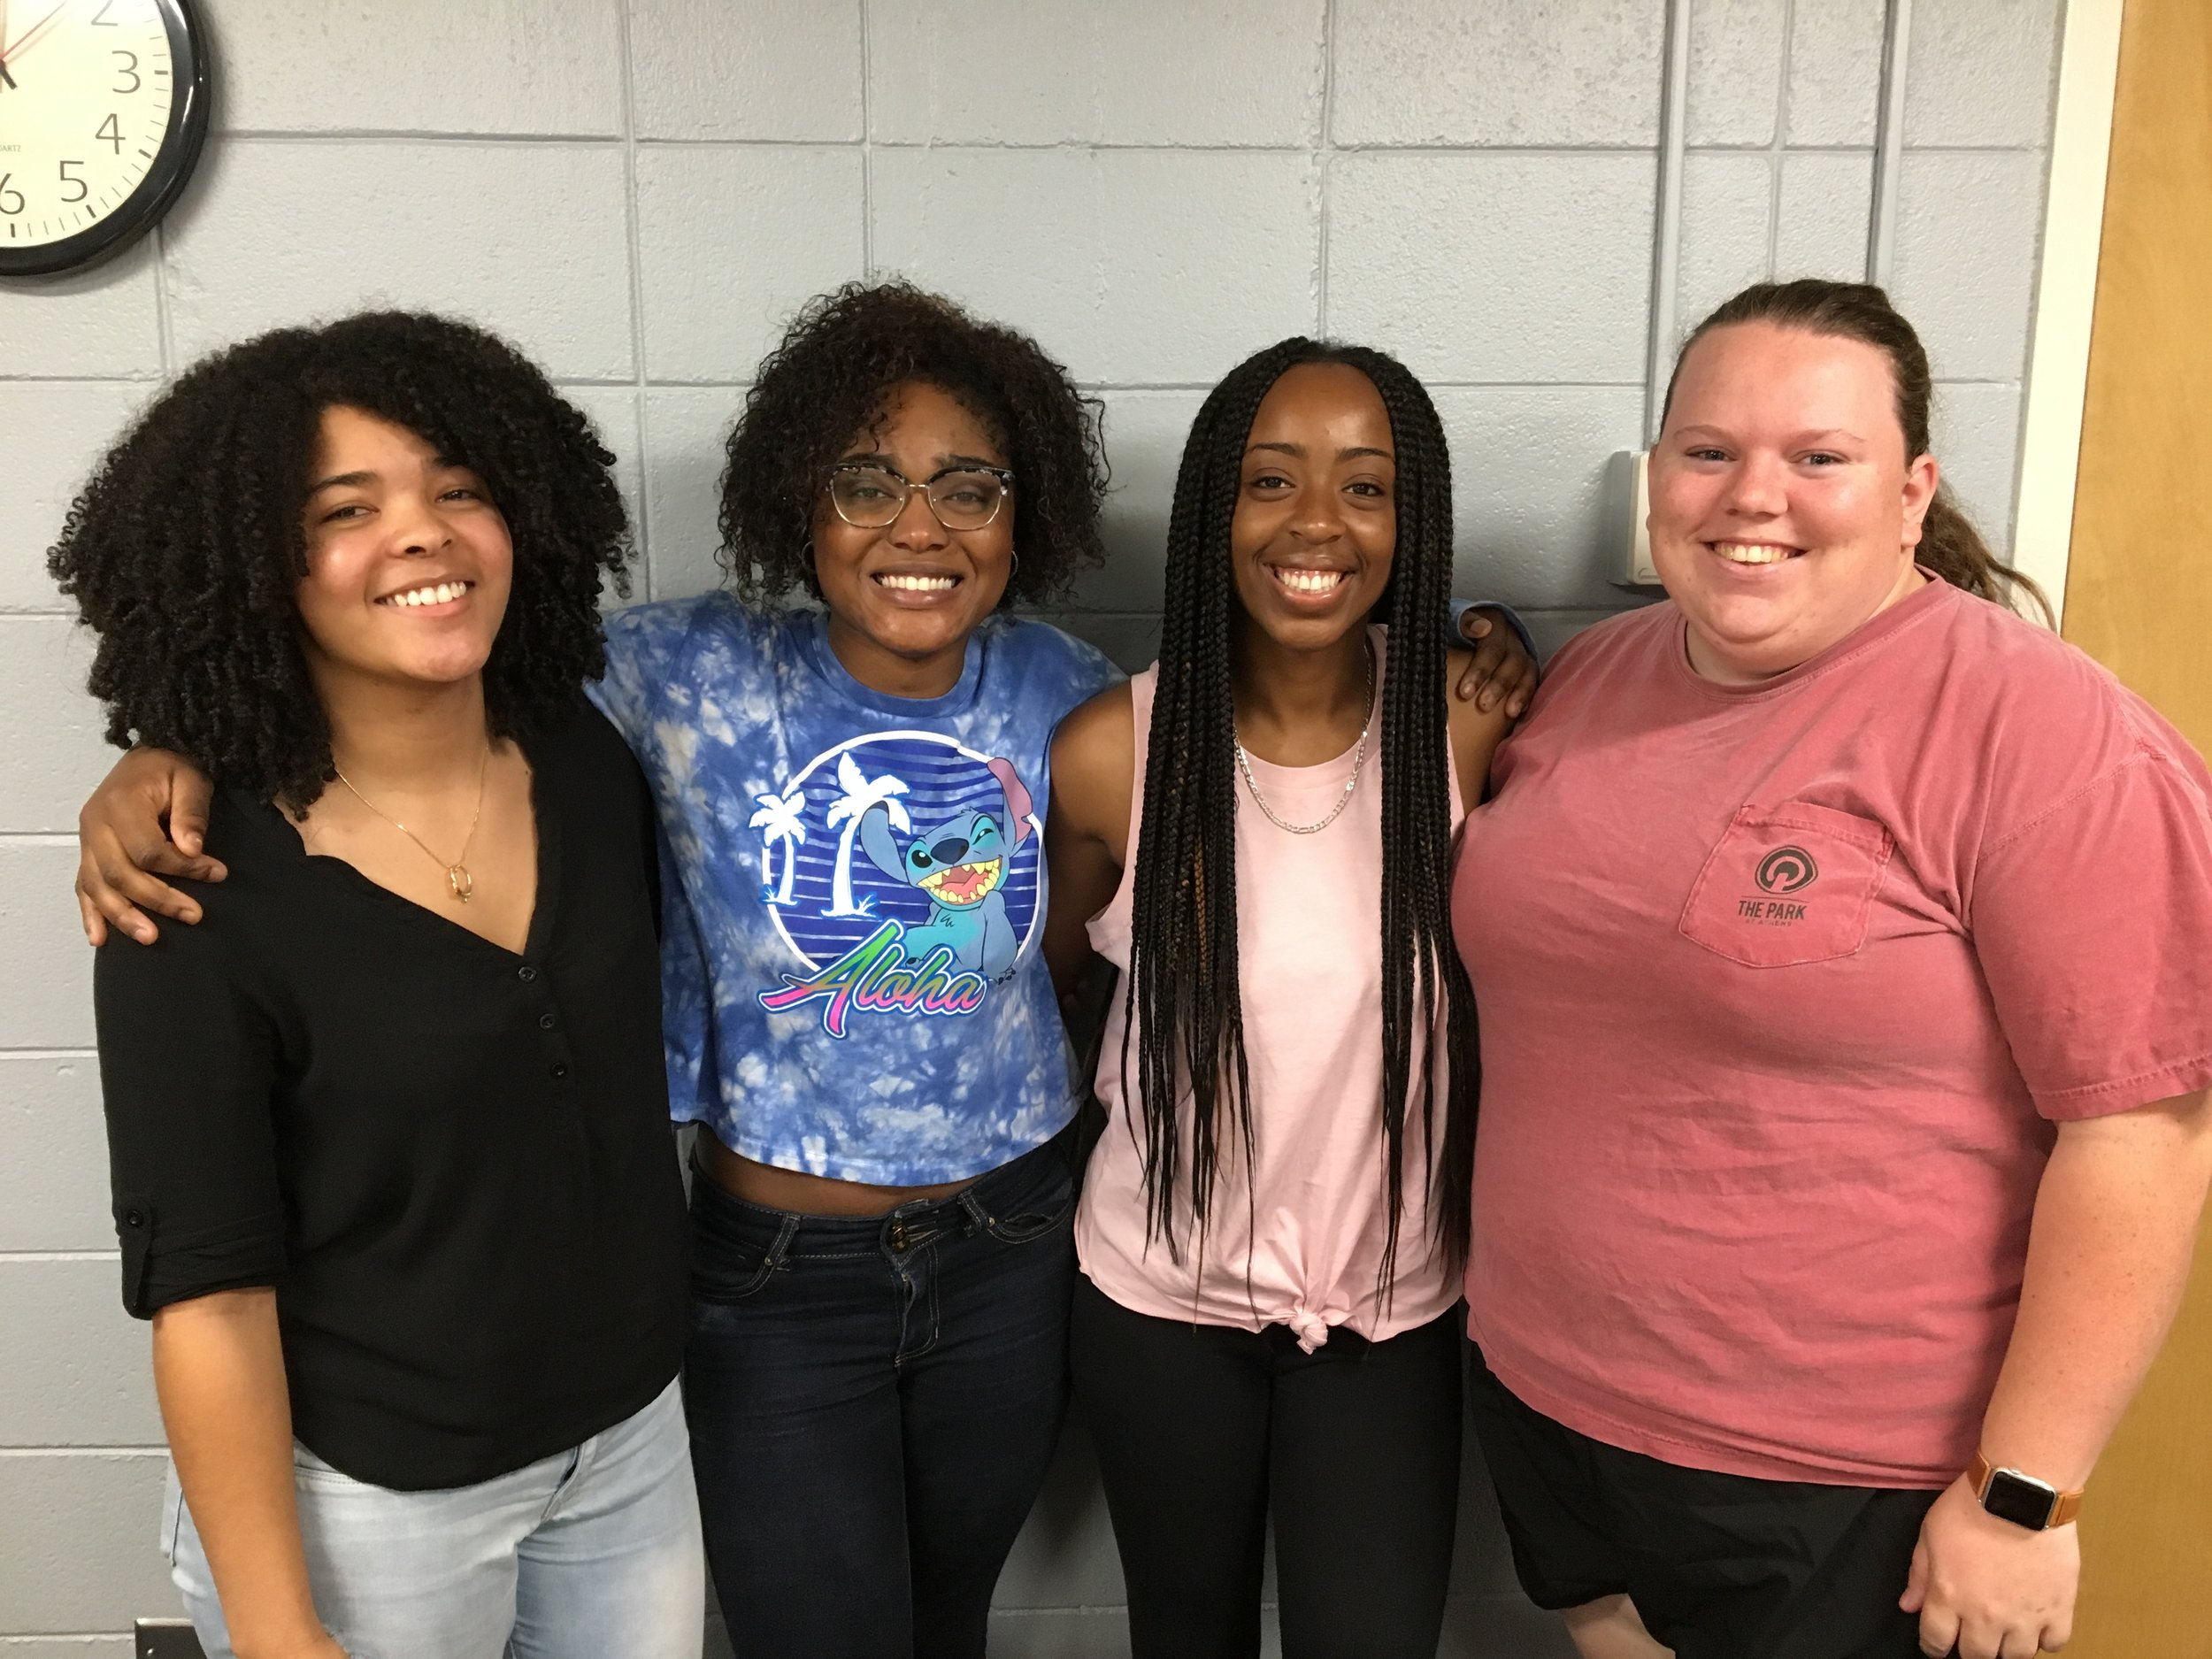 Jada, Princess, Alicia, and Lauren - Still smiling after their research presentations at lab meeting!